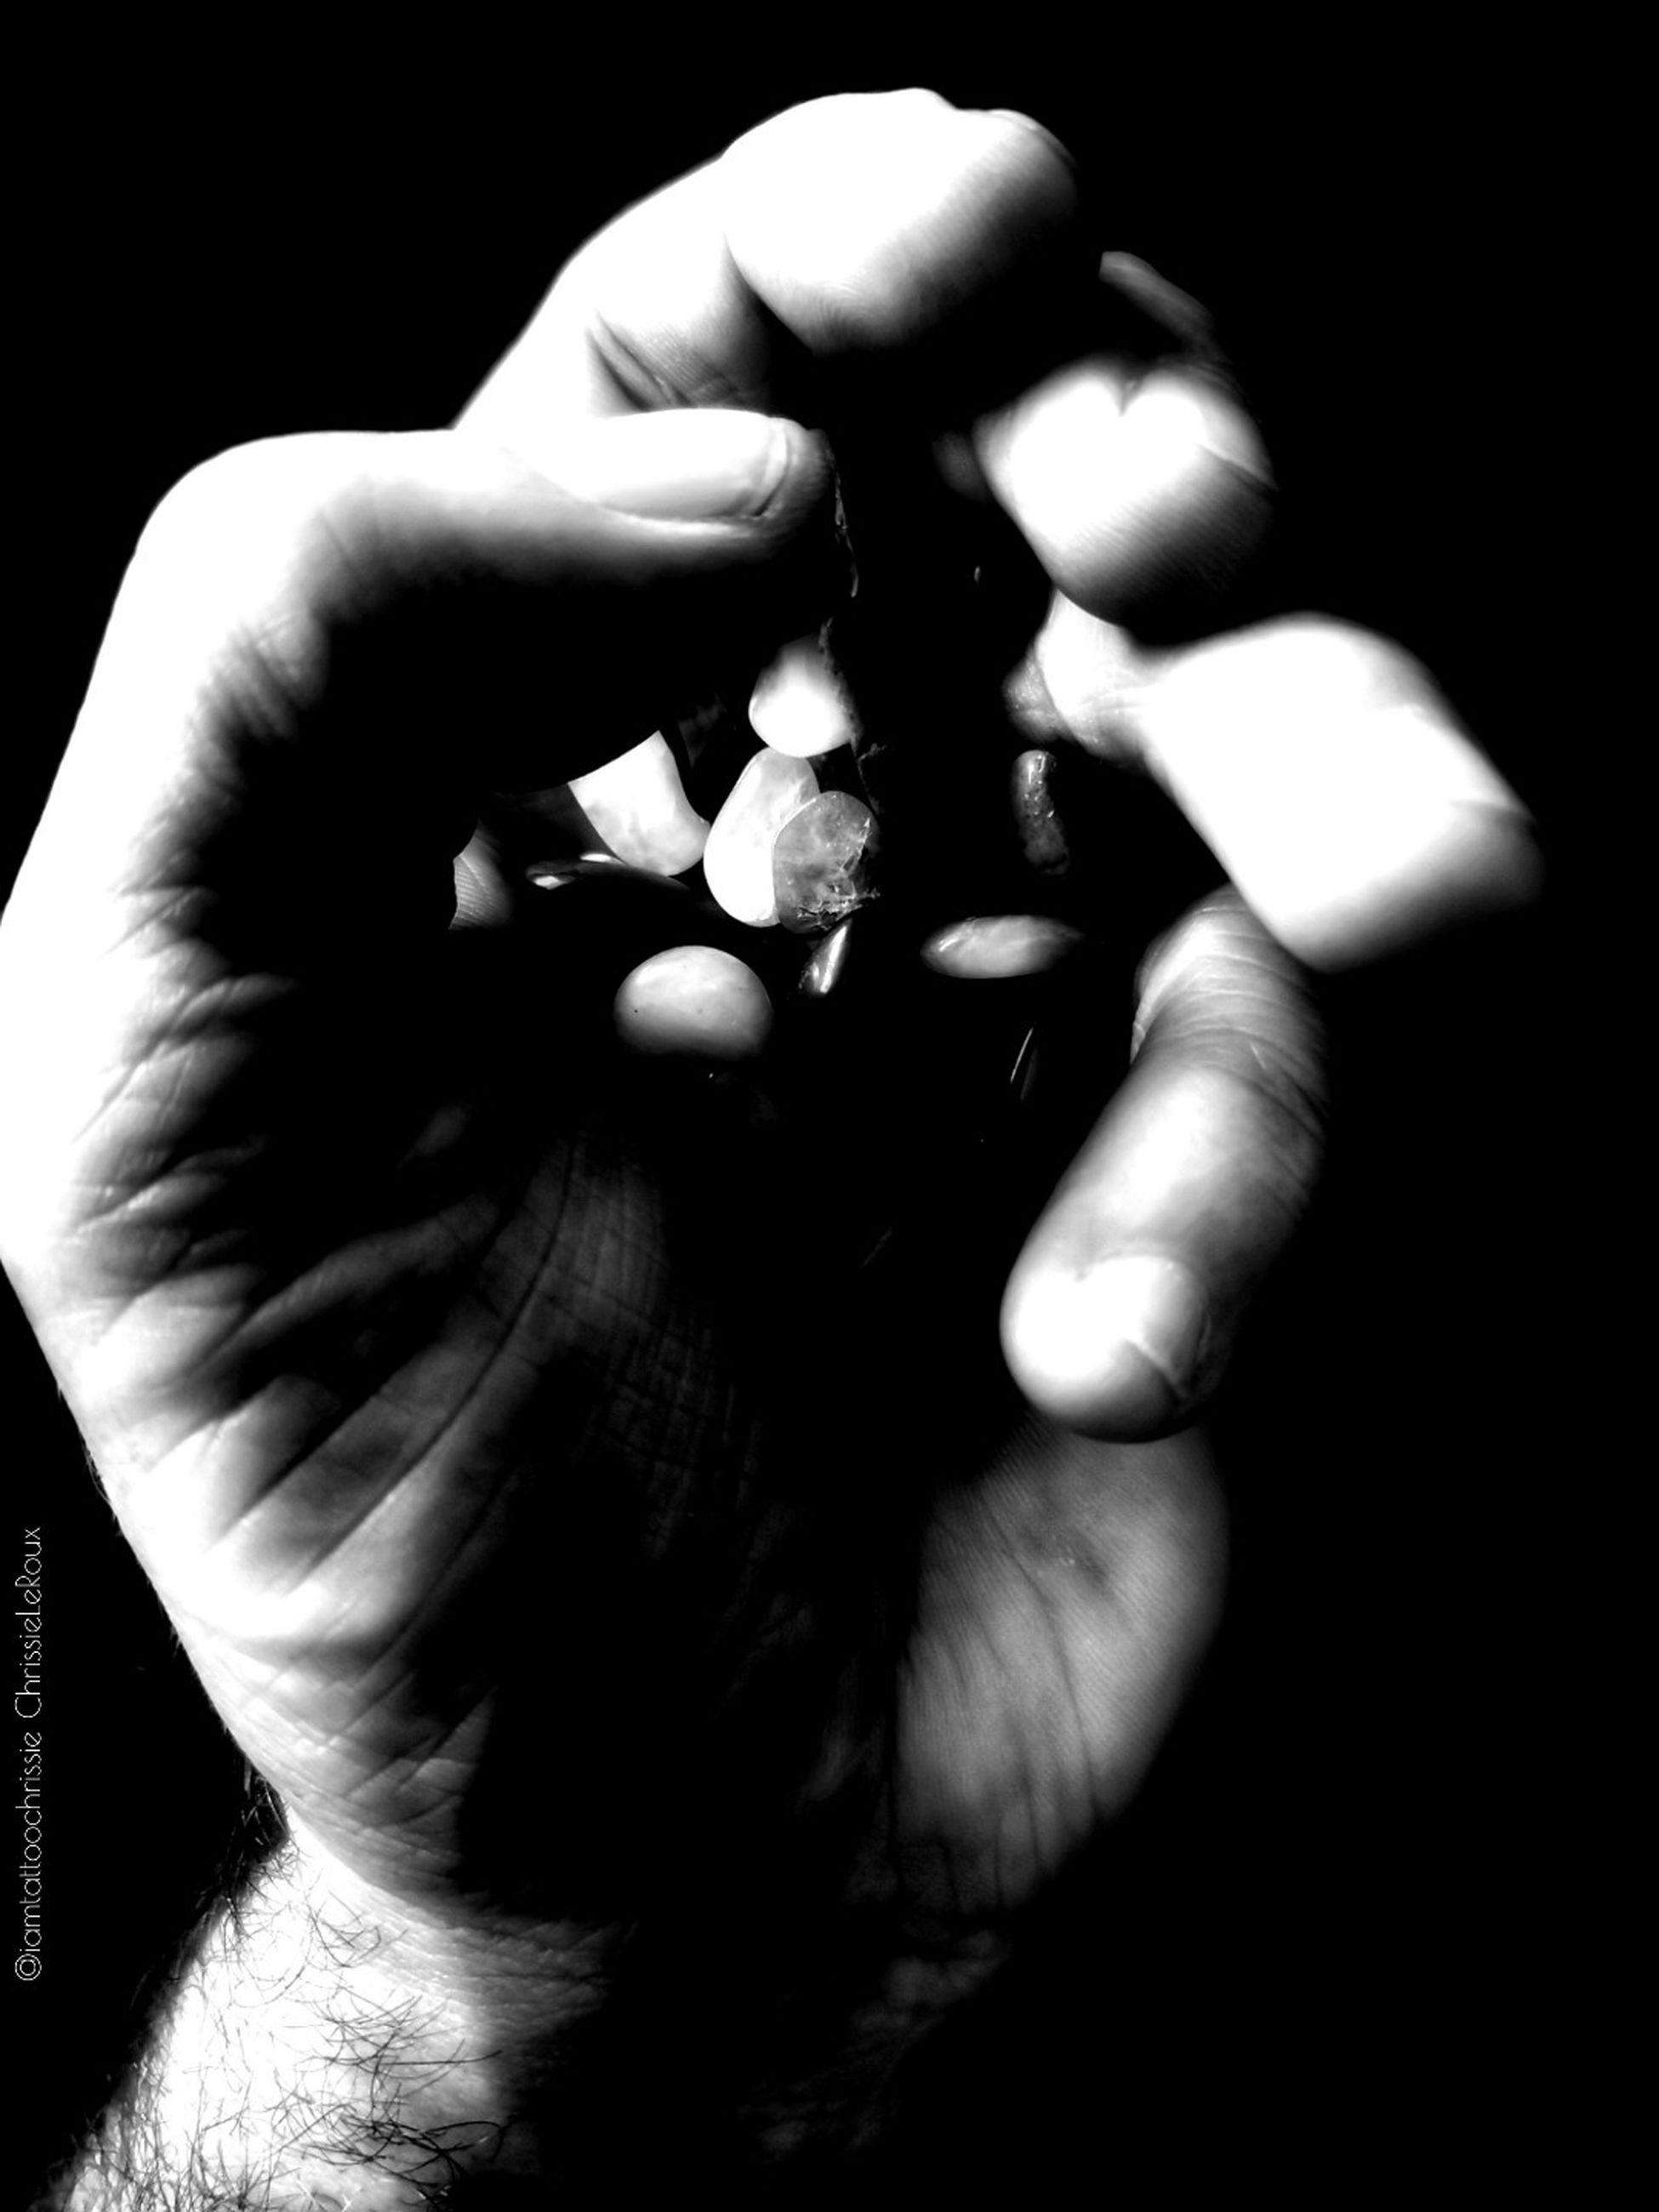 one person, hand, human hand, human body part, close-up, real people, indoors, black background, holding, unrecognizable person, body part, studio shot, sign, lifestyles, social issues, human finger, bad habit, finger, human face